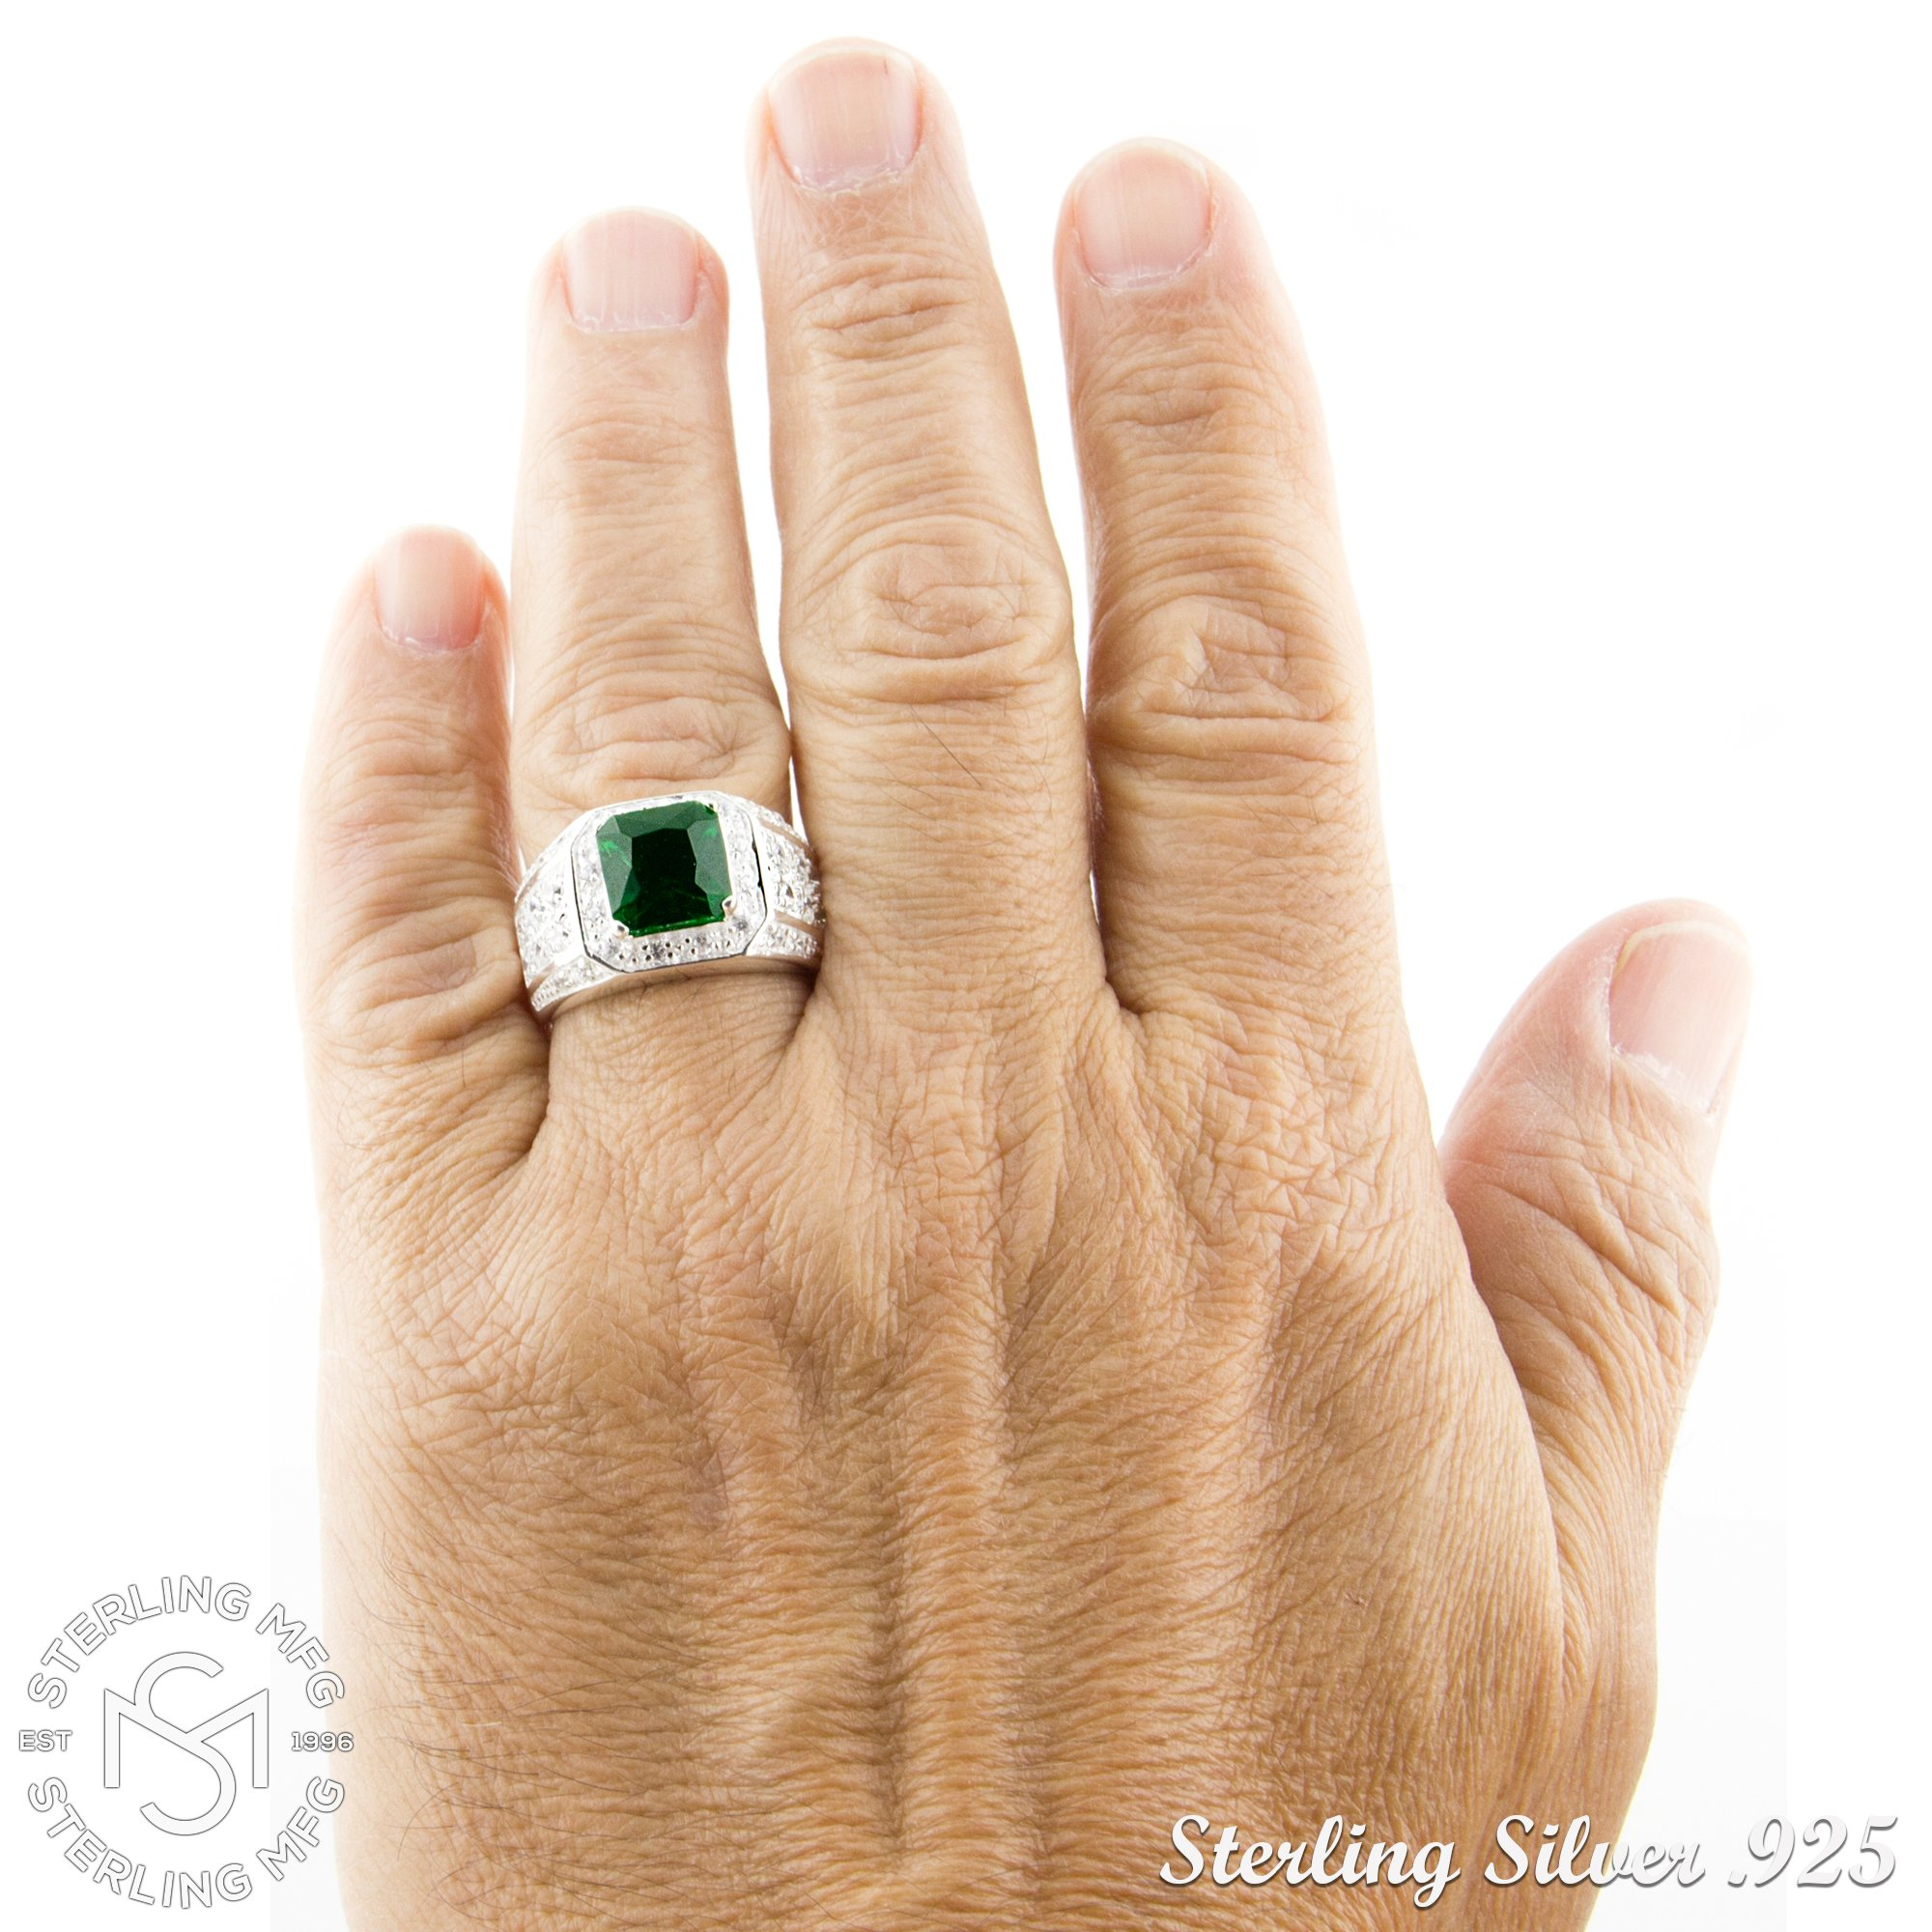 Men's Elegant Sterling Silver .925 Ring High Polish Princess Cut Featuring a Synthetic Green Emerald and 32 Fancy Round Cubic Zirconia (CZ) Stones by Sterling Manufacturers (Image #5)